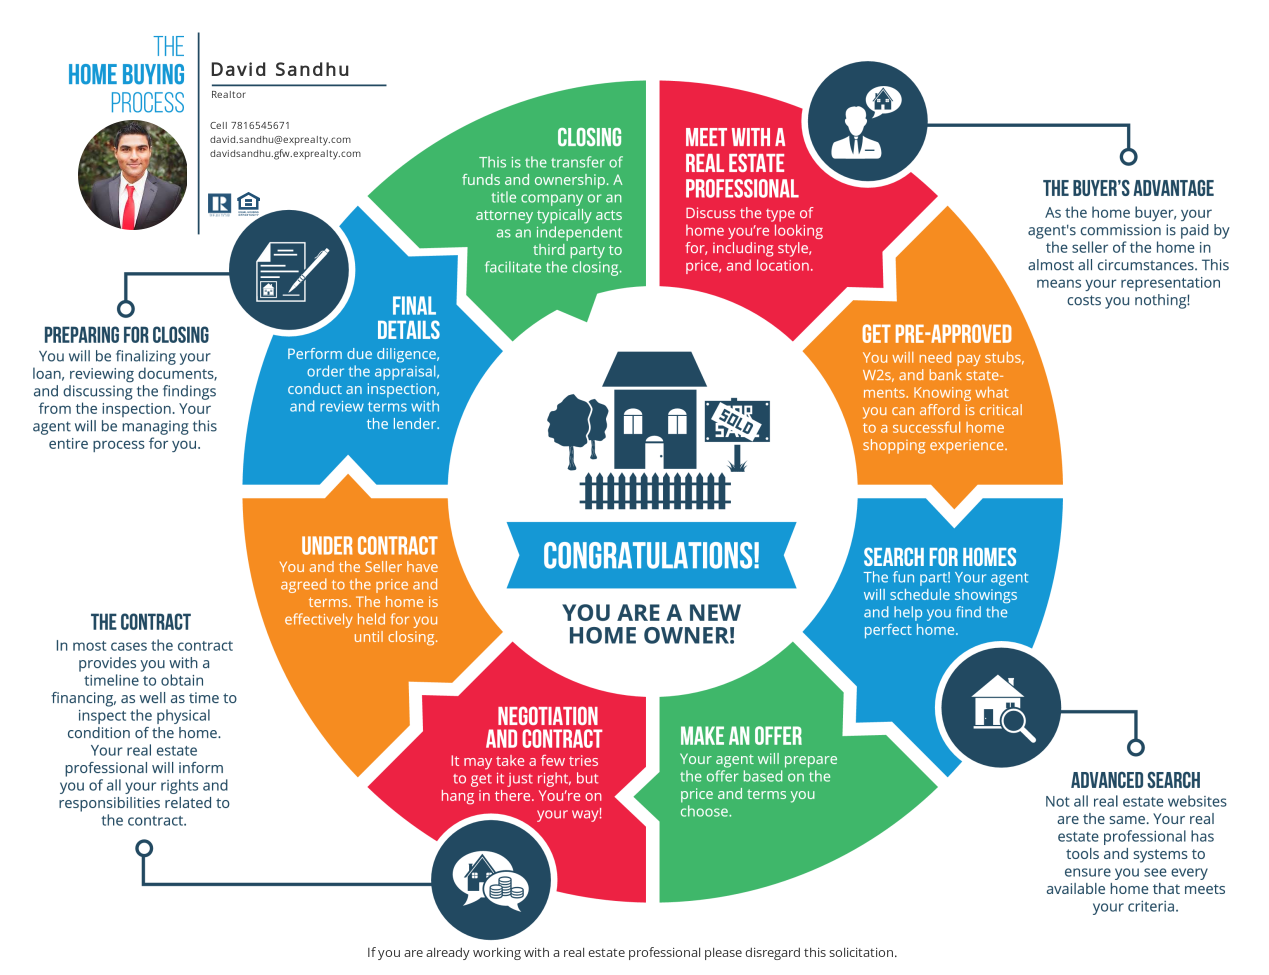 Home Buying Roadmap